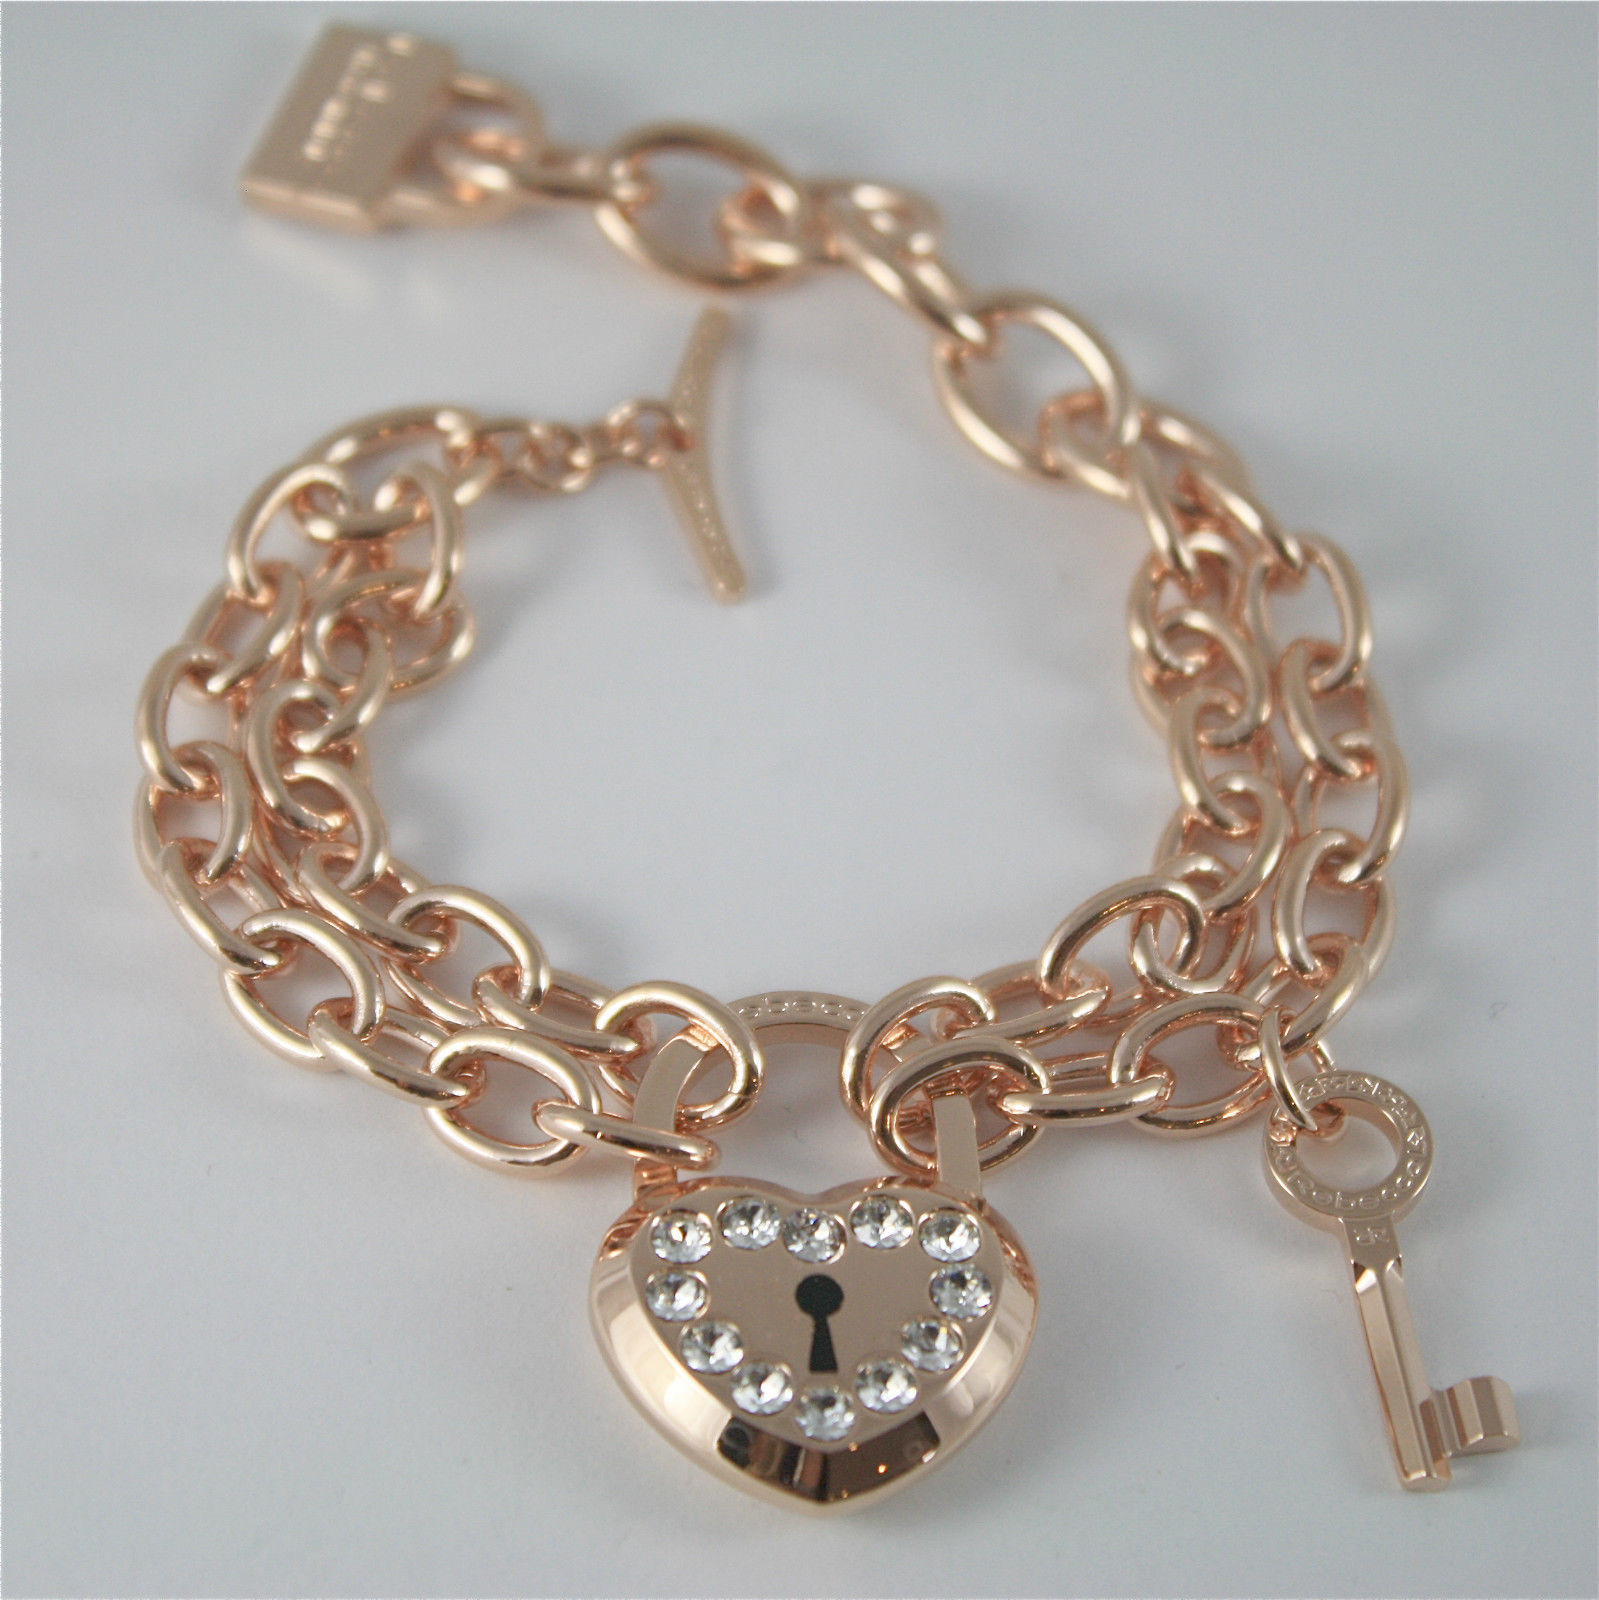 ROSE GOLD PLATED BRONZE REBECCA BRACELET LOVE LOCK BLLBRB26 MADE IN ITALY 7.87